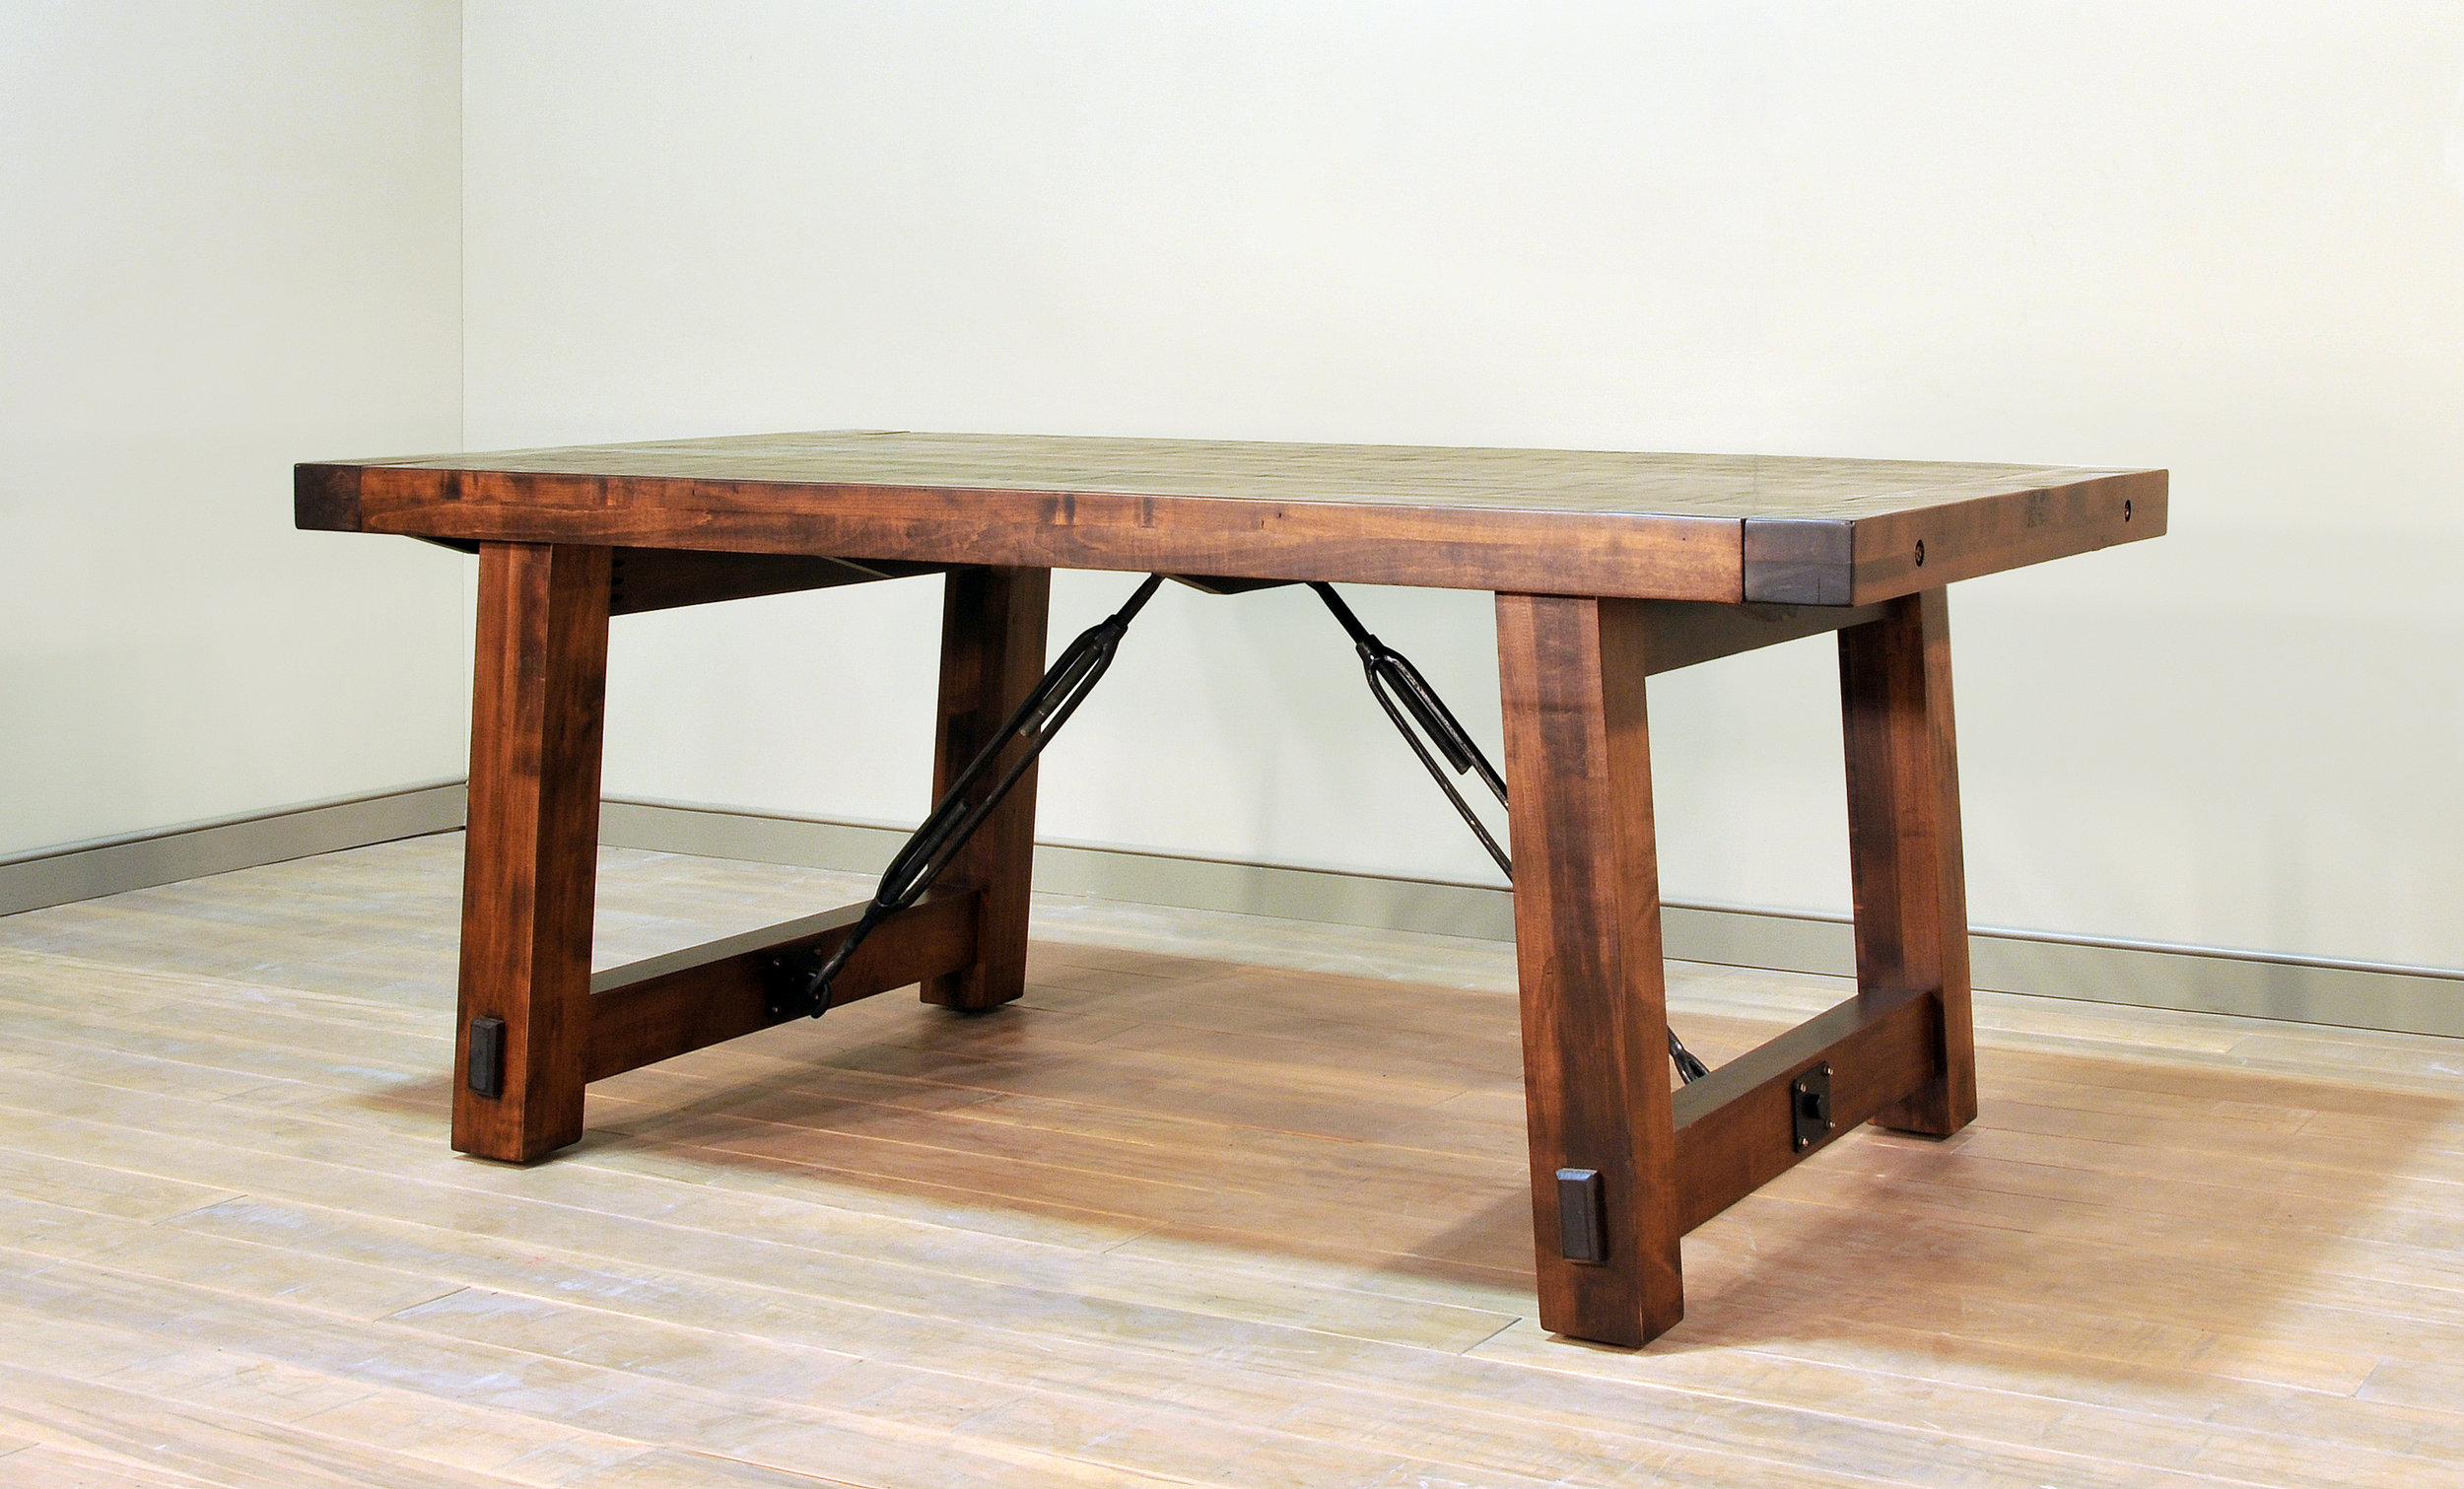 Benchmark table for sale in PA